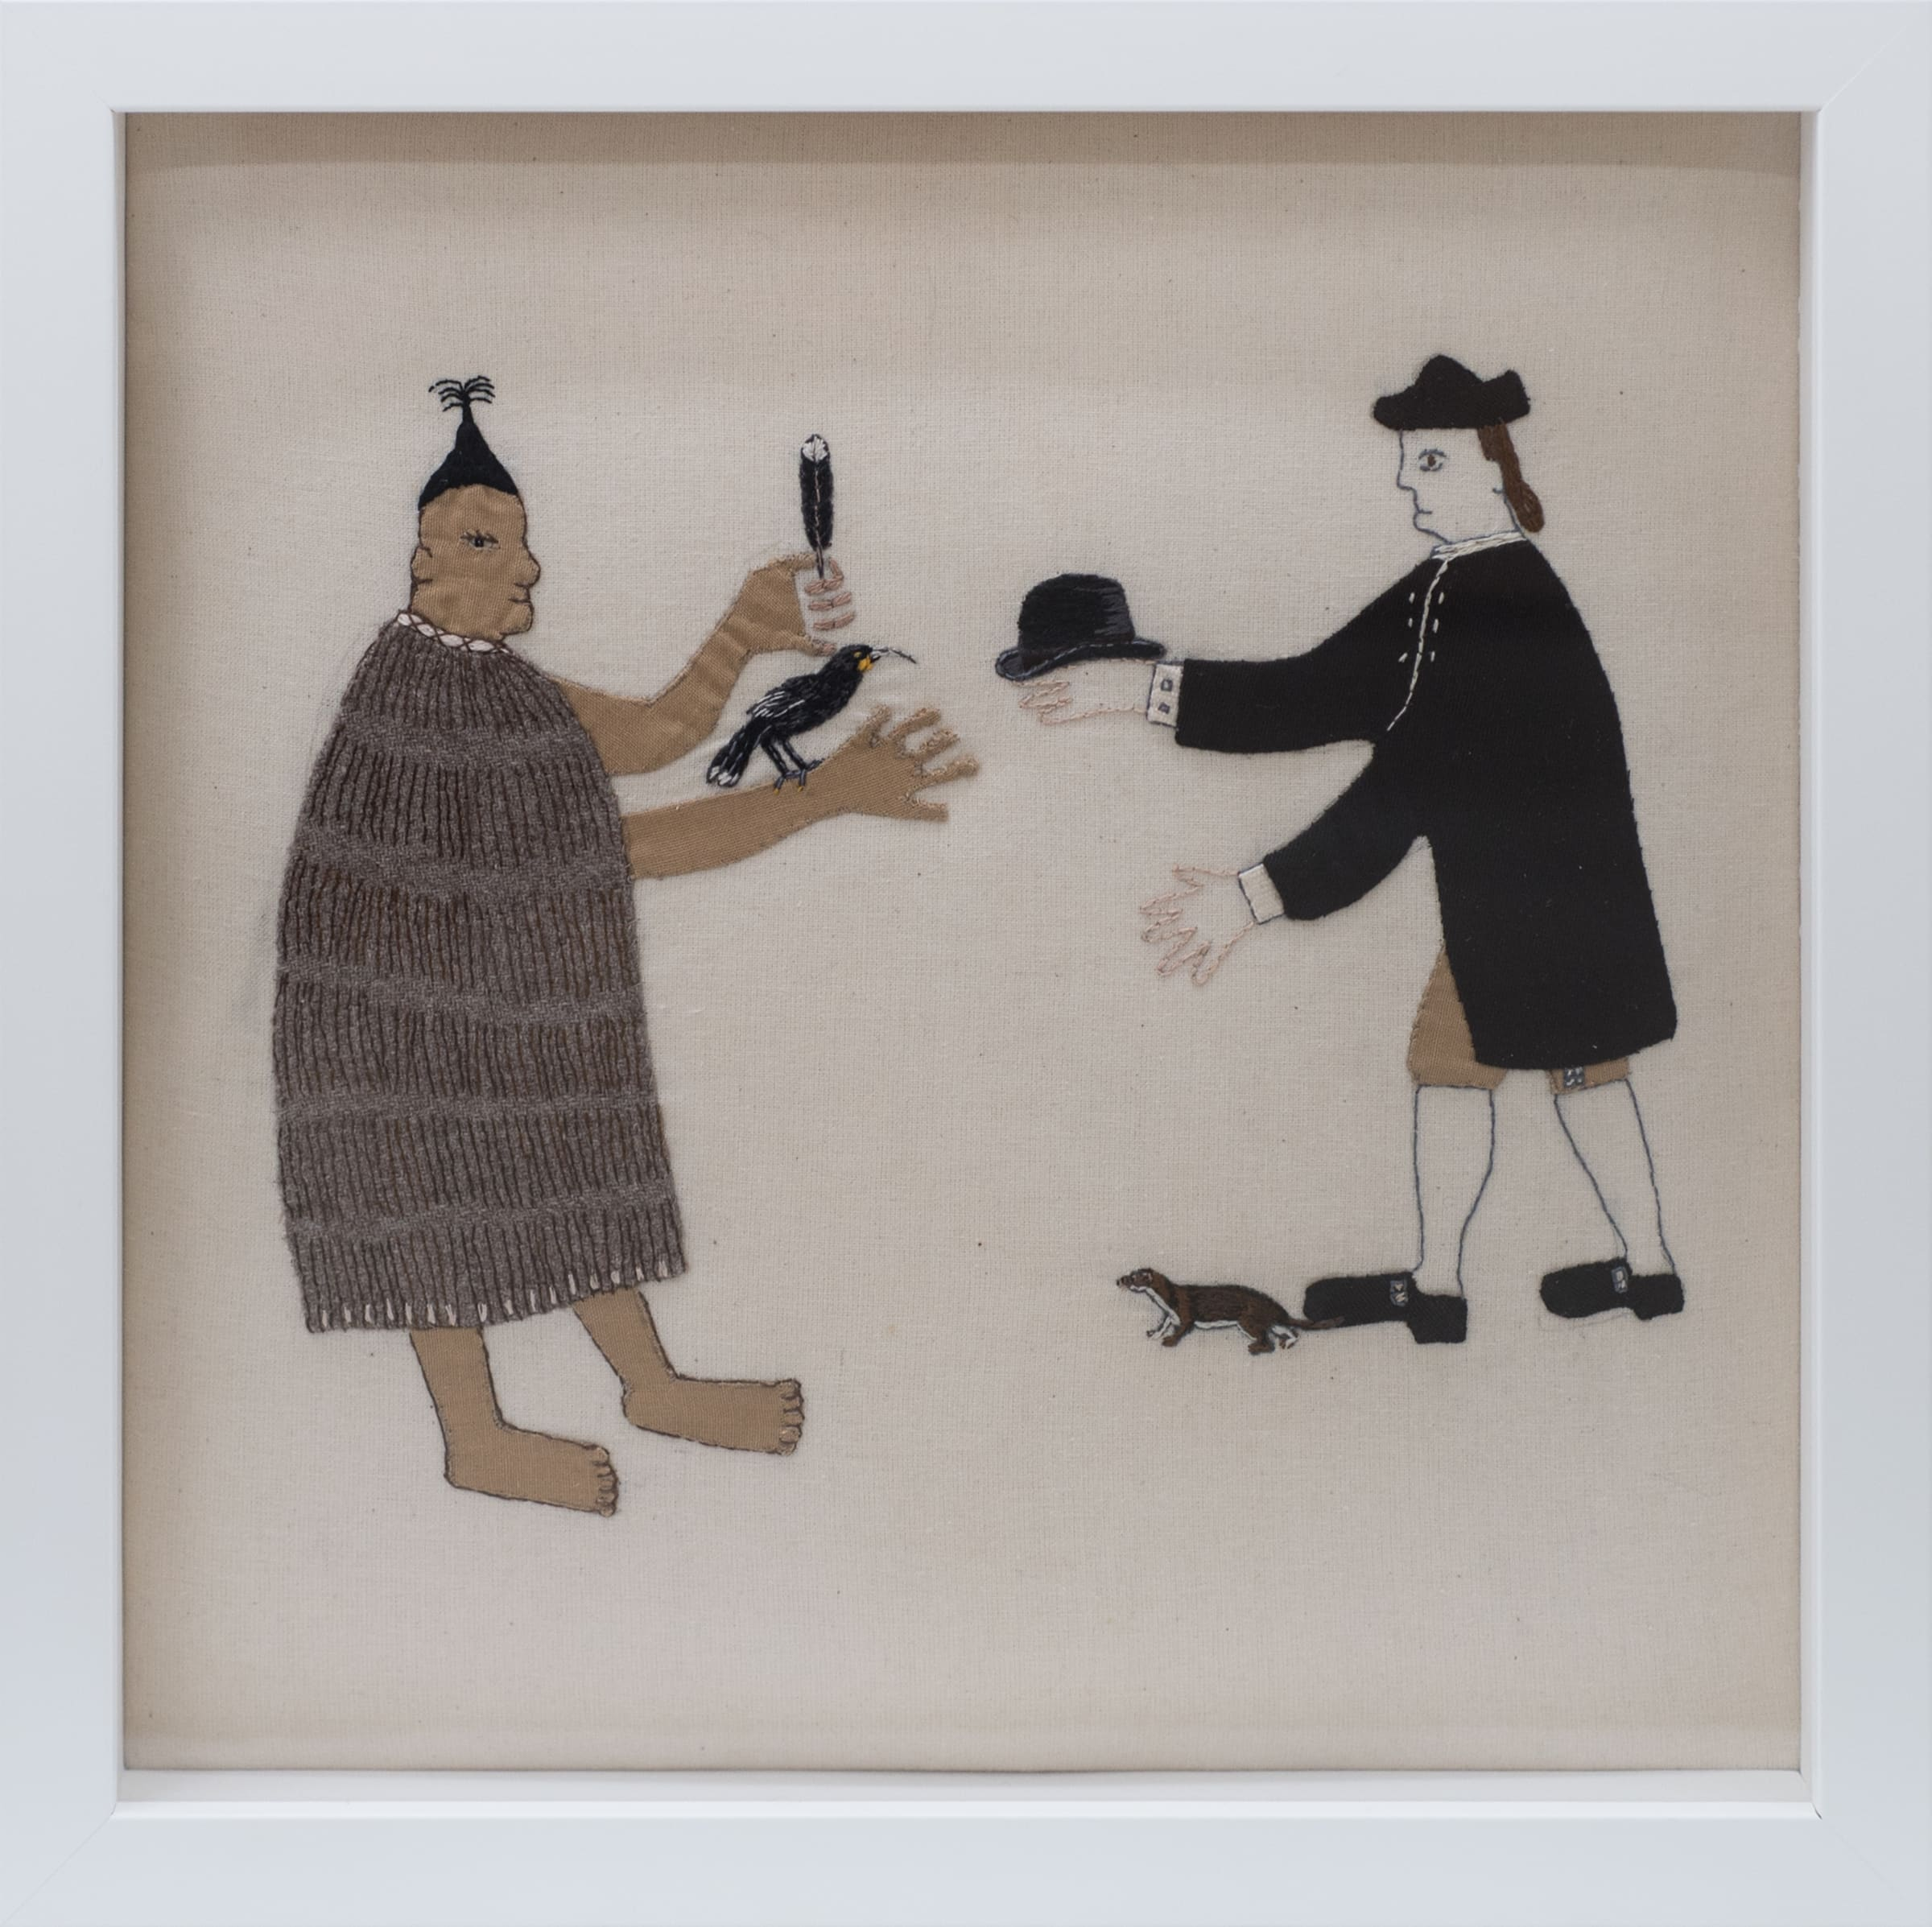 "<span class=""link fancybox-details-link""><a href=""/artists/48-sarah-munro/works/7270-sarah-munro-trade-items-bowler-hat-stoat-huia-2018/"">View Detail Page</a></span><div class=""artist""><strong>Sarah Munro</strong></div> <div class=""title""><em>Trade Items: Bowler Hat, Stoat, Huia</em>, 2018</div> <div class=""signed_and_dated"">Signed & Dated</div> <div class=""medium"">Unbleached calico, cloth, thread</div> <div class=""dimensions"">30 x 30 cm<br /> 11 3/4 x 11 3/4 in</div><div class=""copyright_line"">Copyright The Artist</div>"